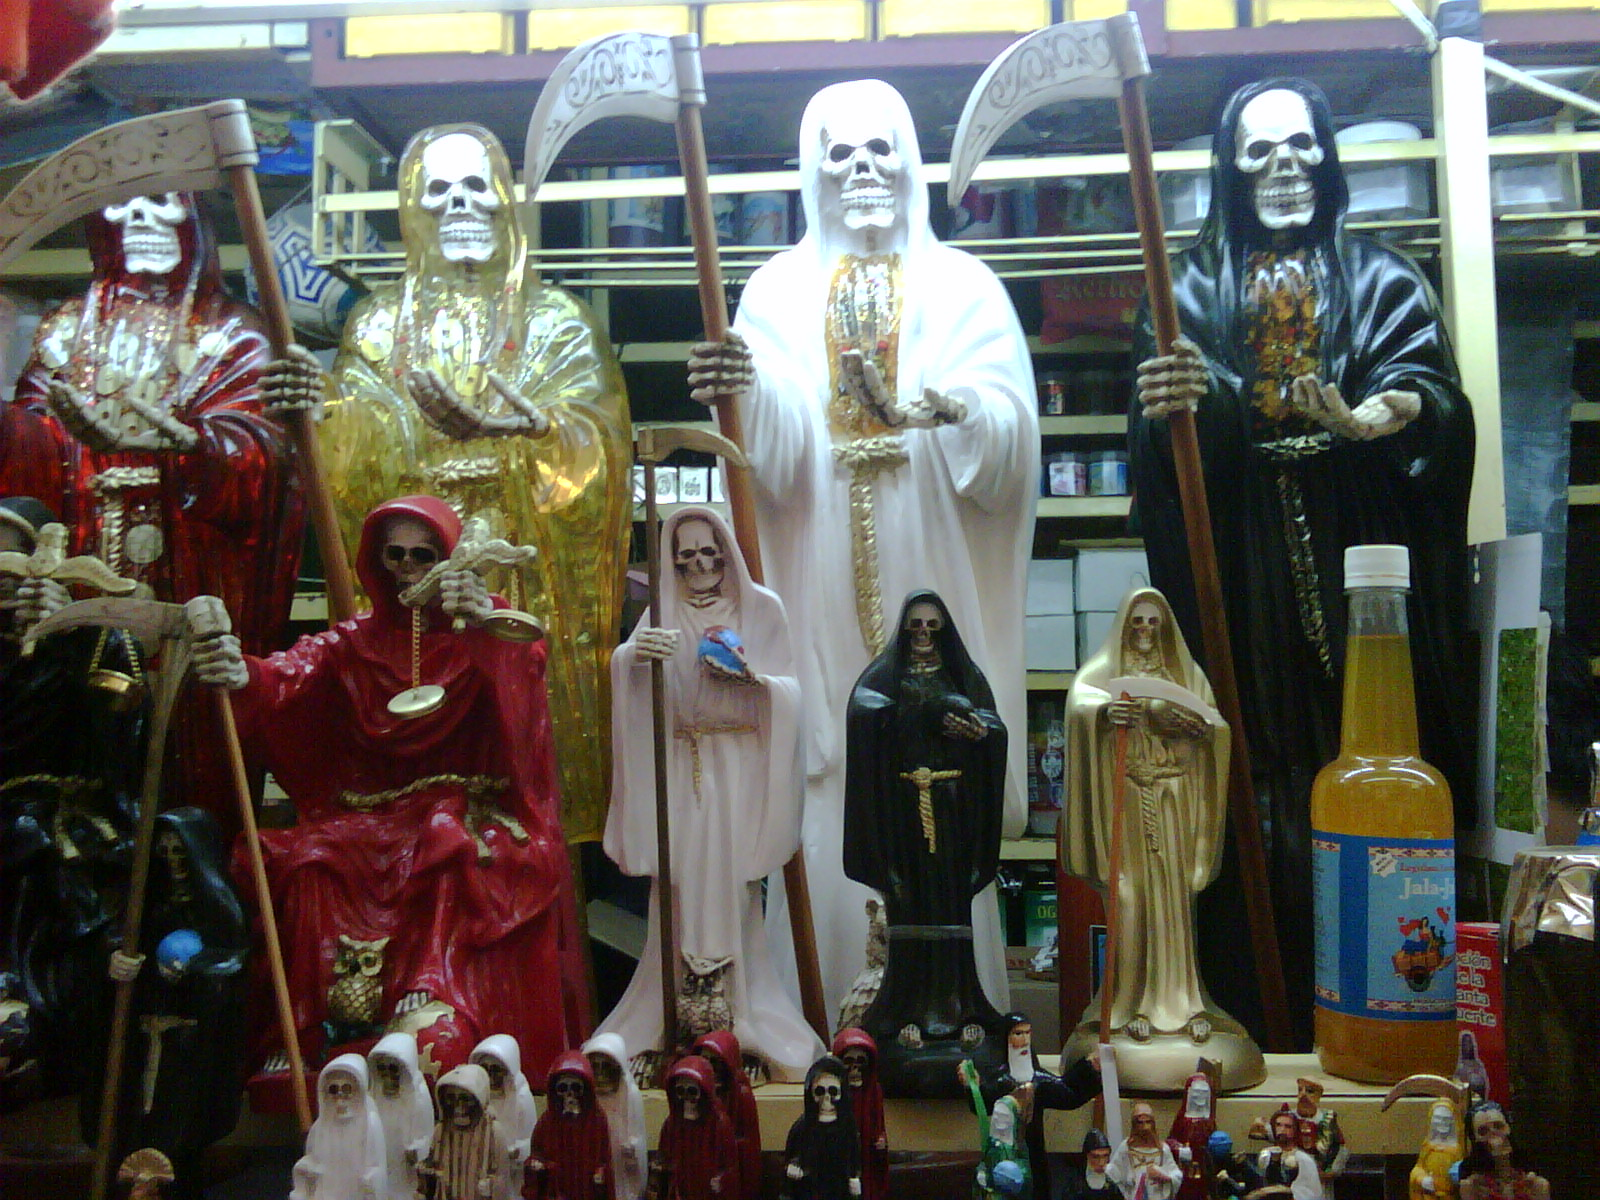 this is santa muerte the saint of death worshipped by criminals. more on him later.